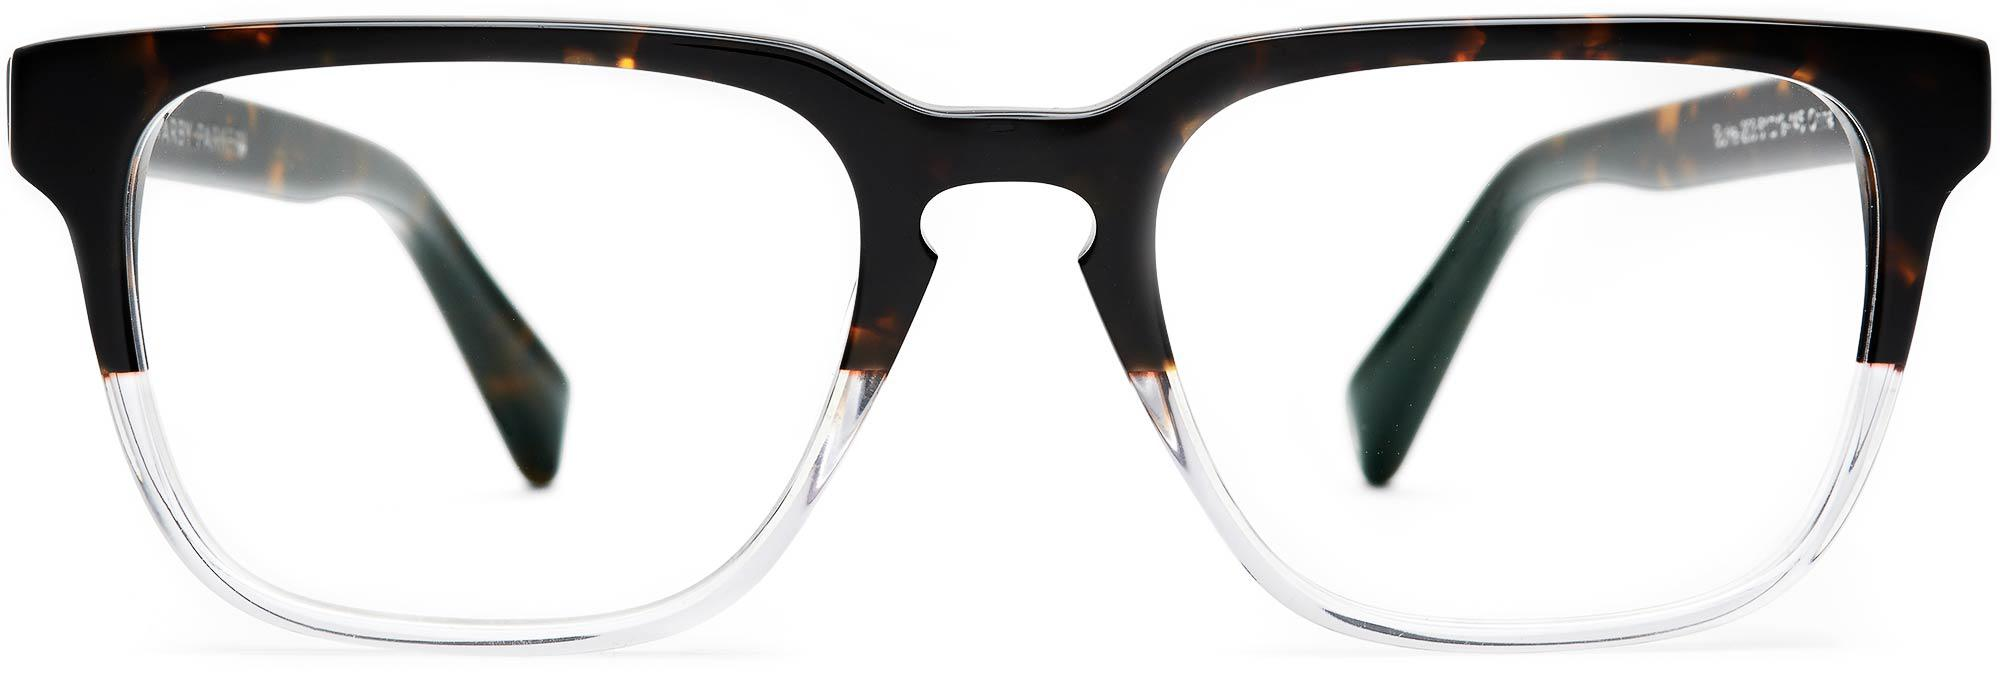 4856e761f0f Men s Eyeglasses